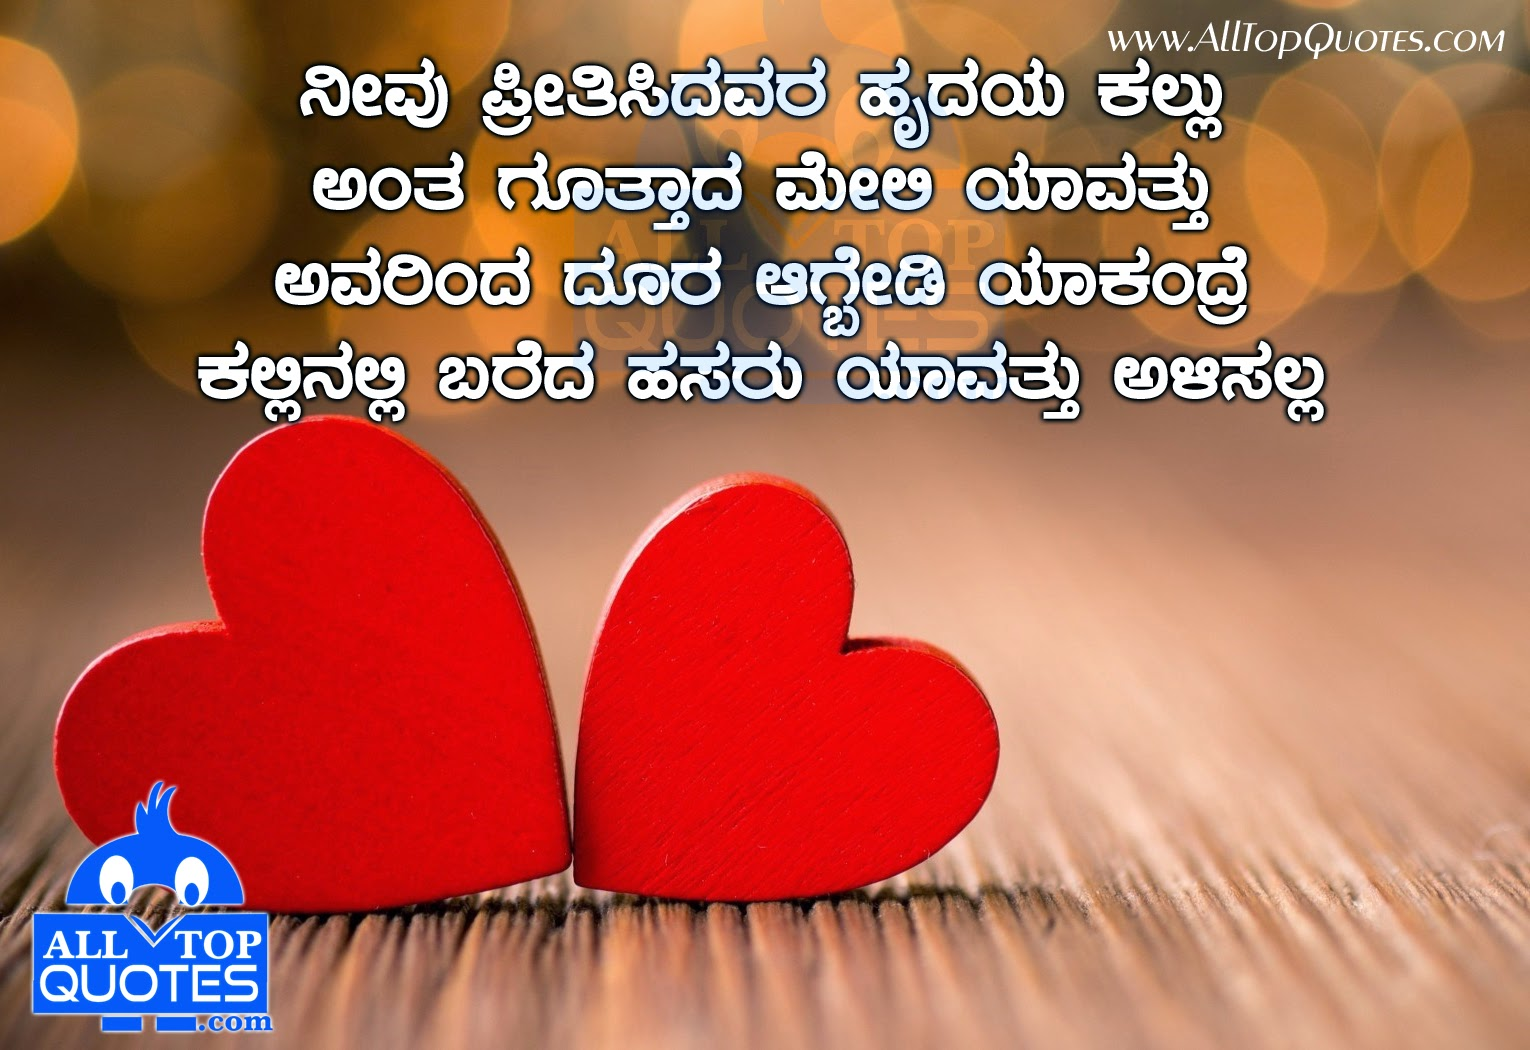 Sad Love Quotes For Him In Kannada : Love Sad Feelings Kannada Beautiful lover quotation in kannada all top ...